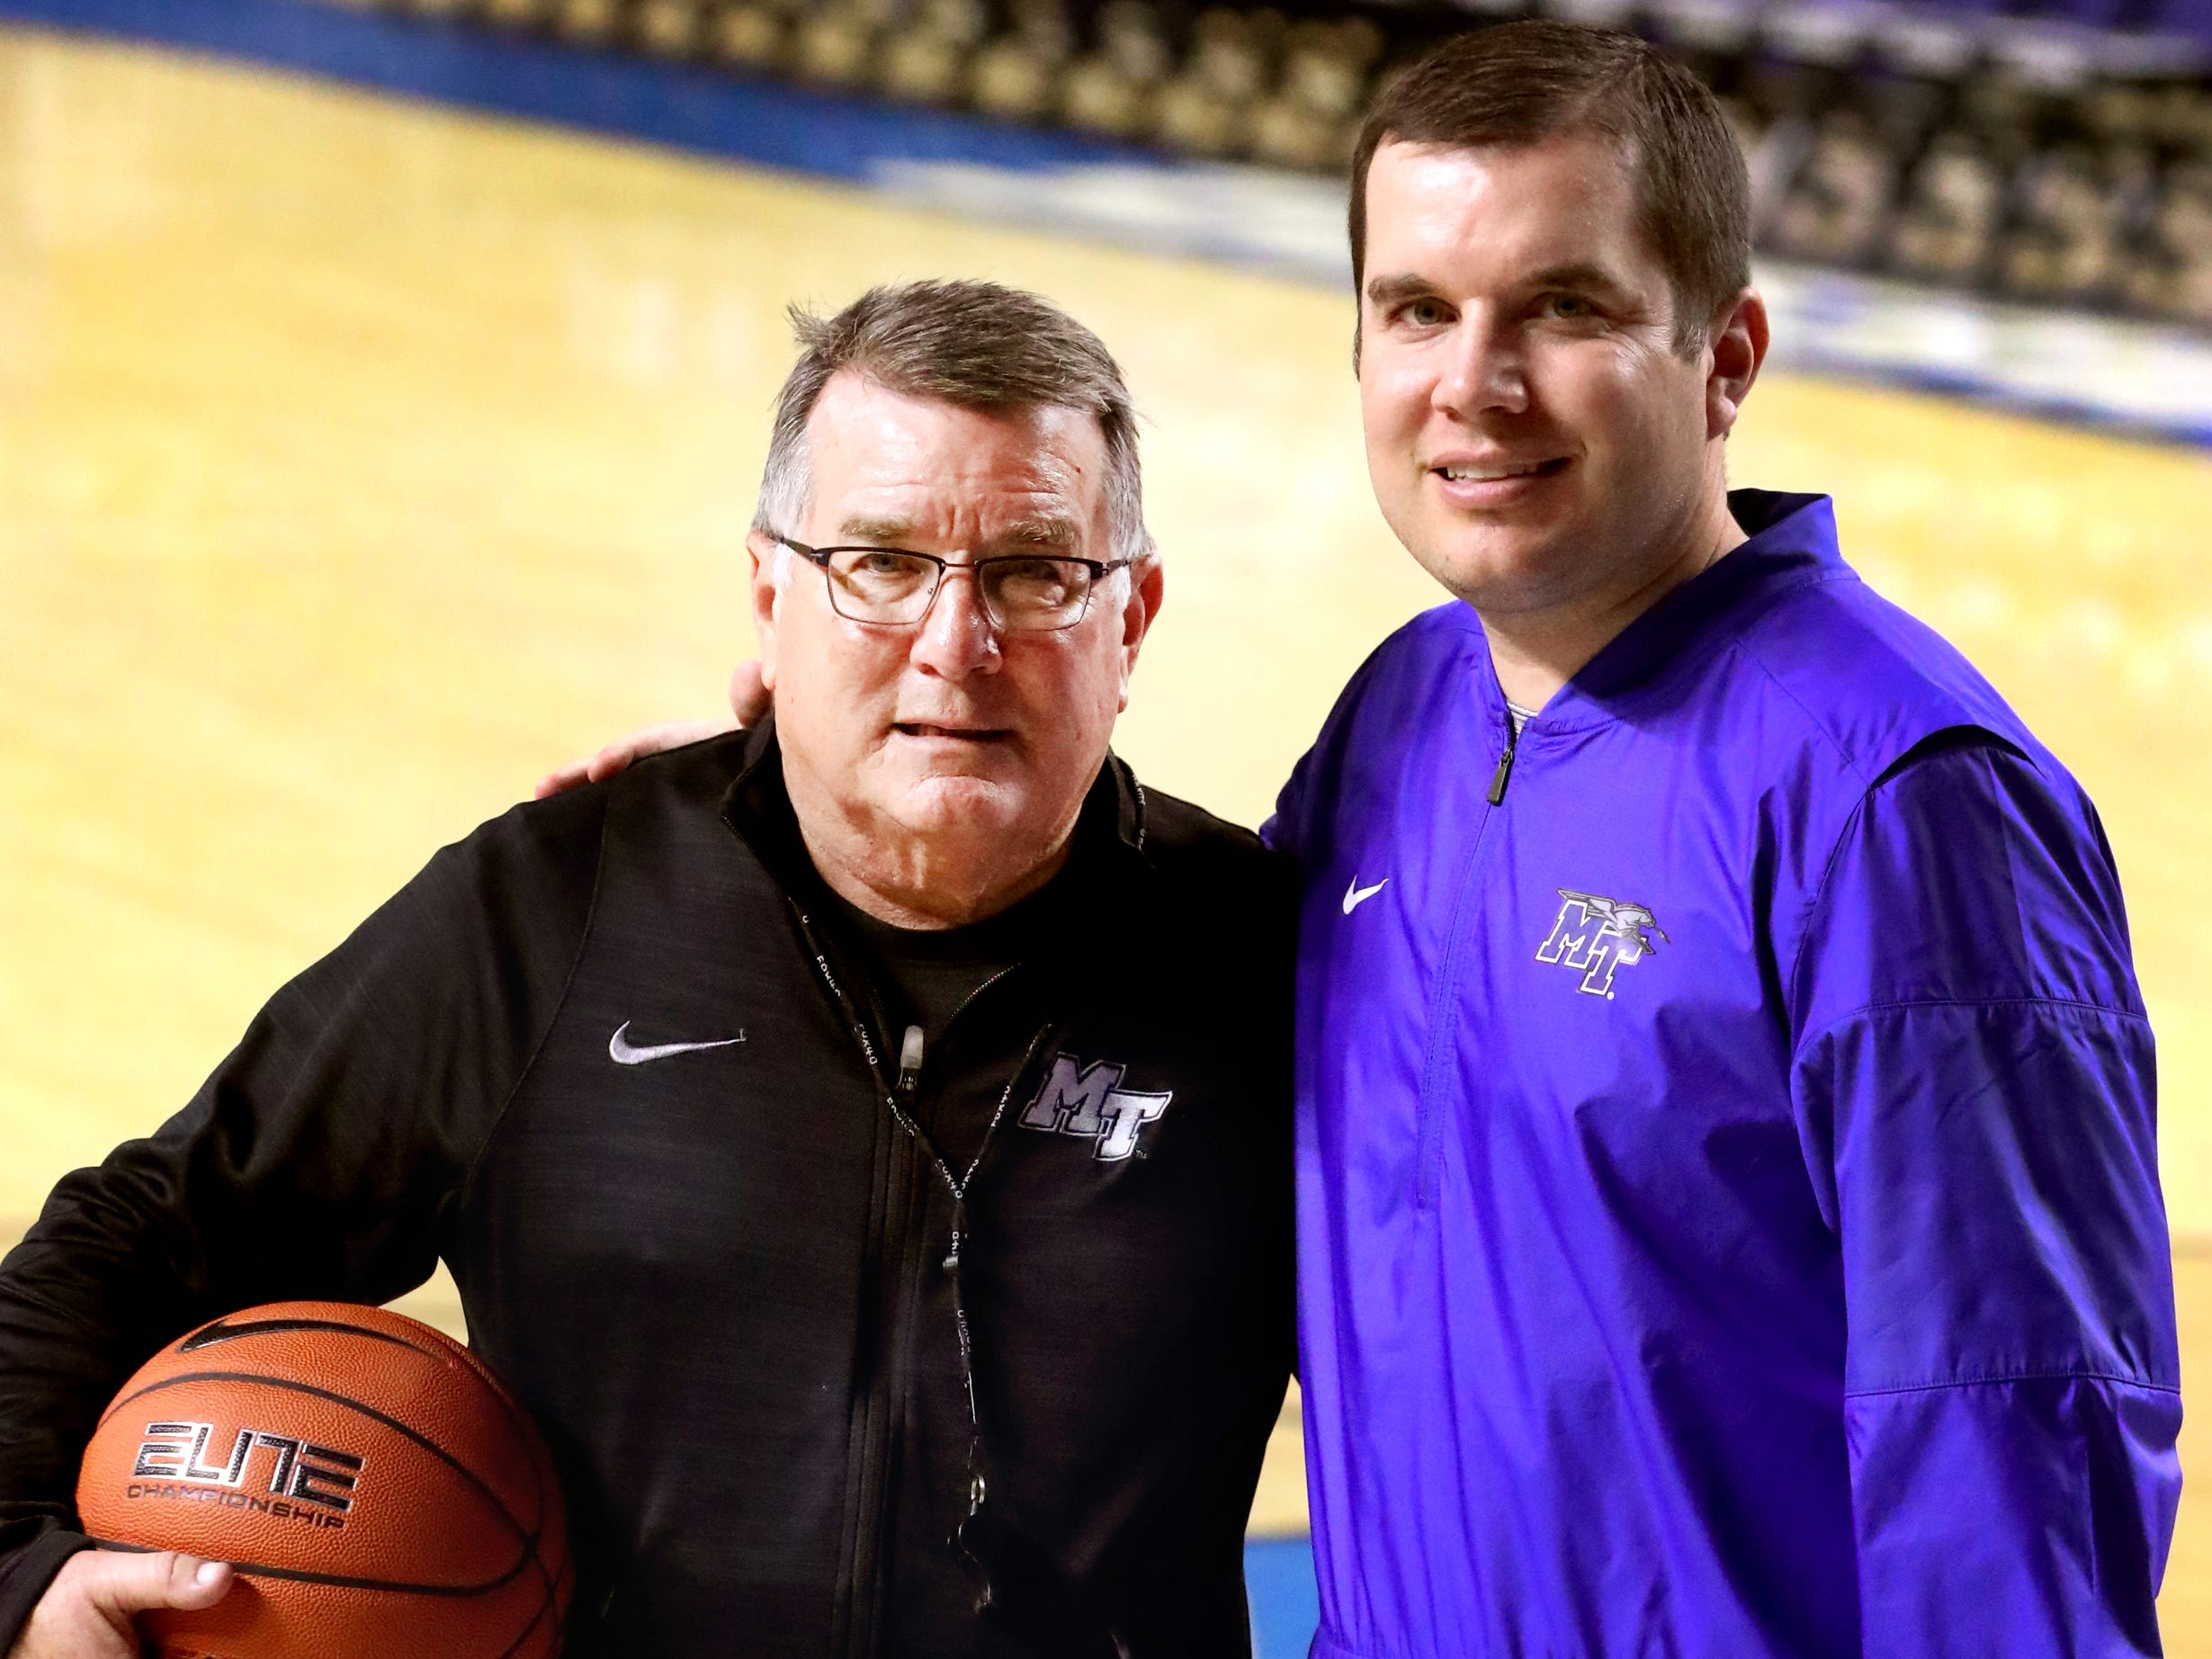 MTSU women's basketball head coach Rick Insell, left and assistant coach Matt Insell after practice at Murphy Center on Monday, Nov.. 5, 2018.